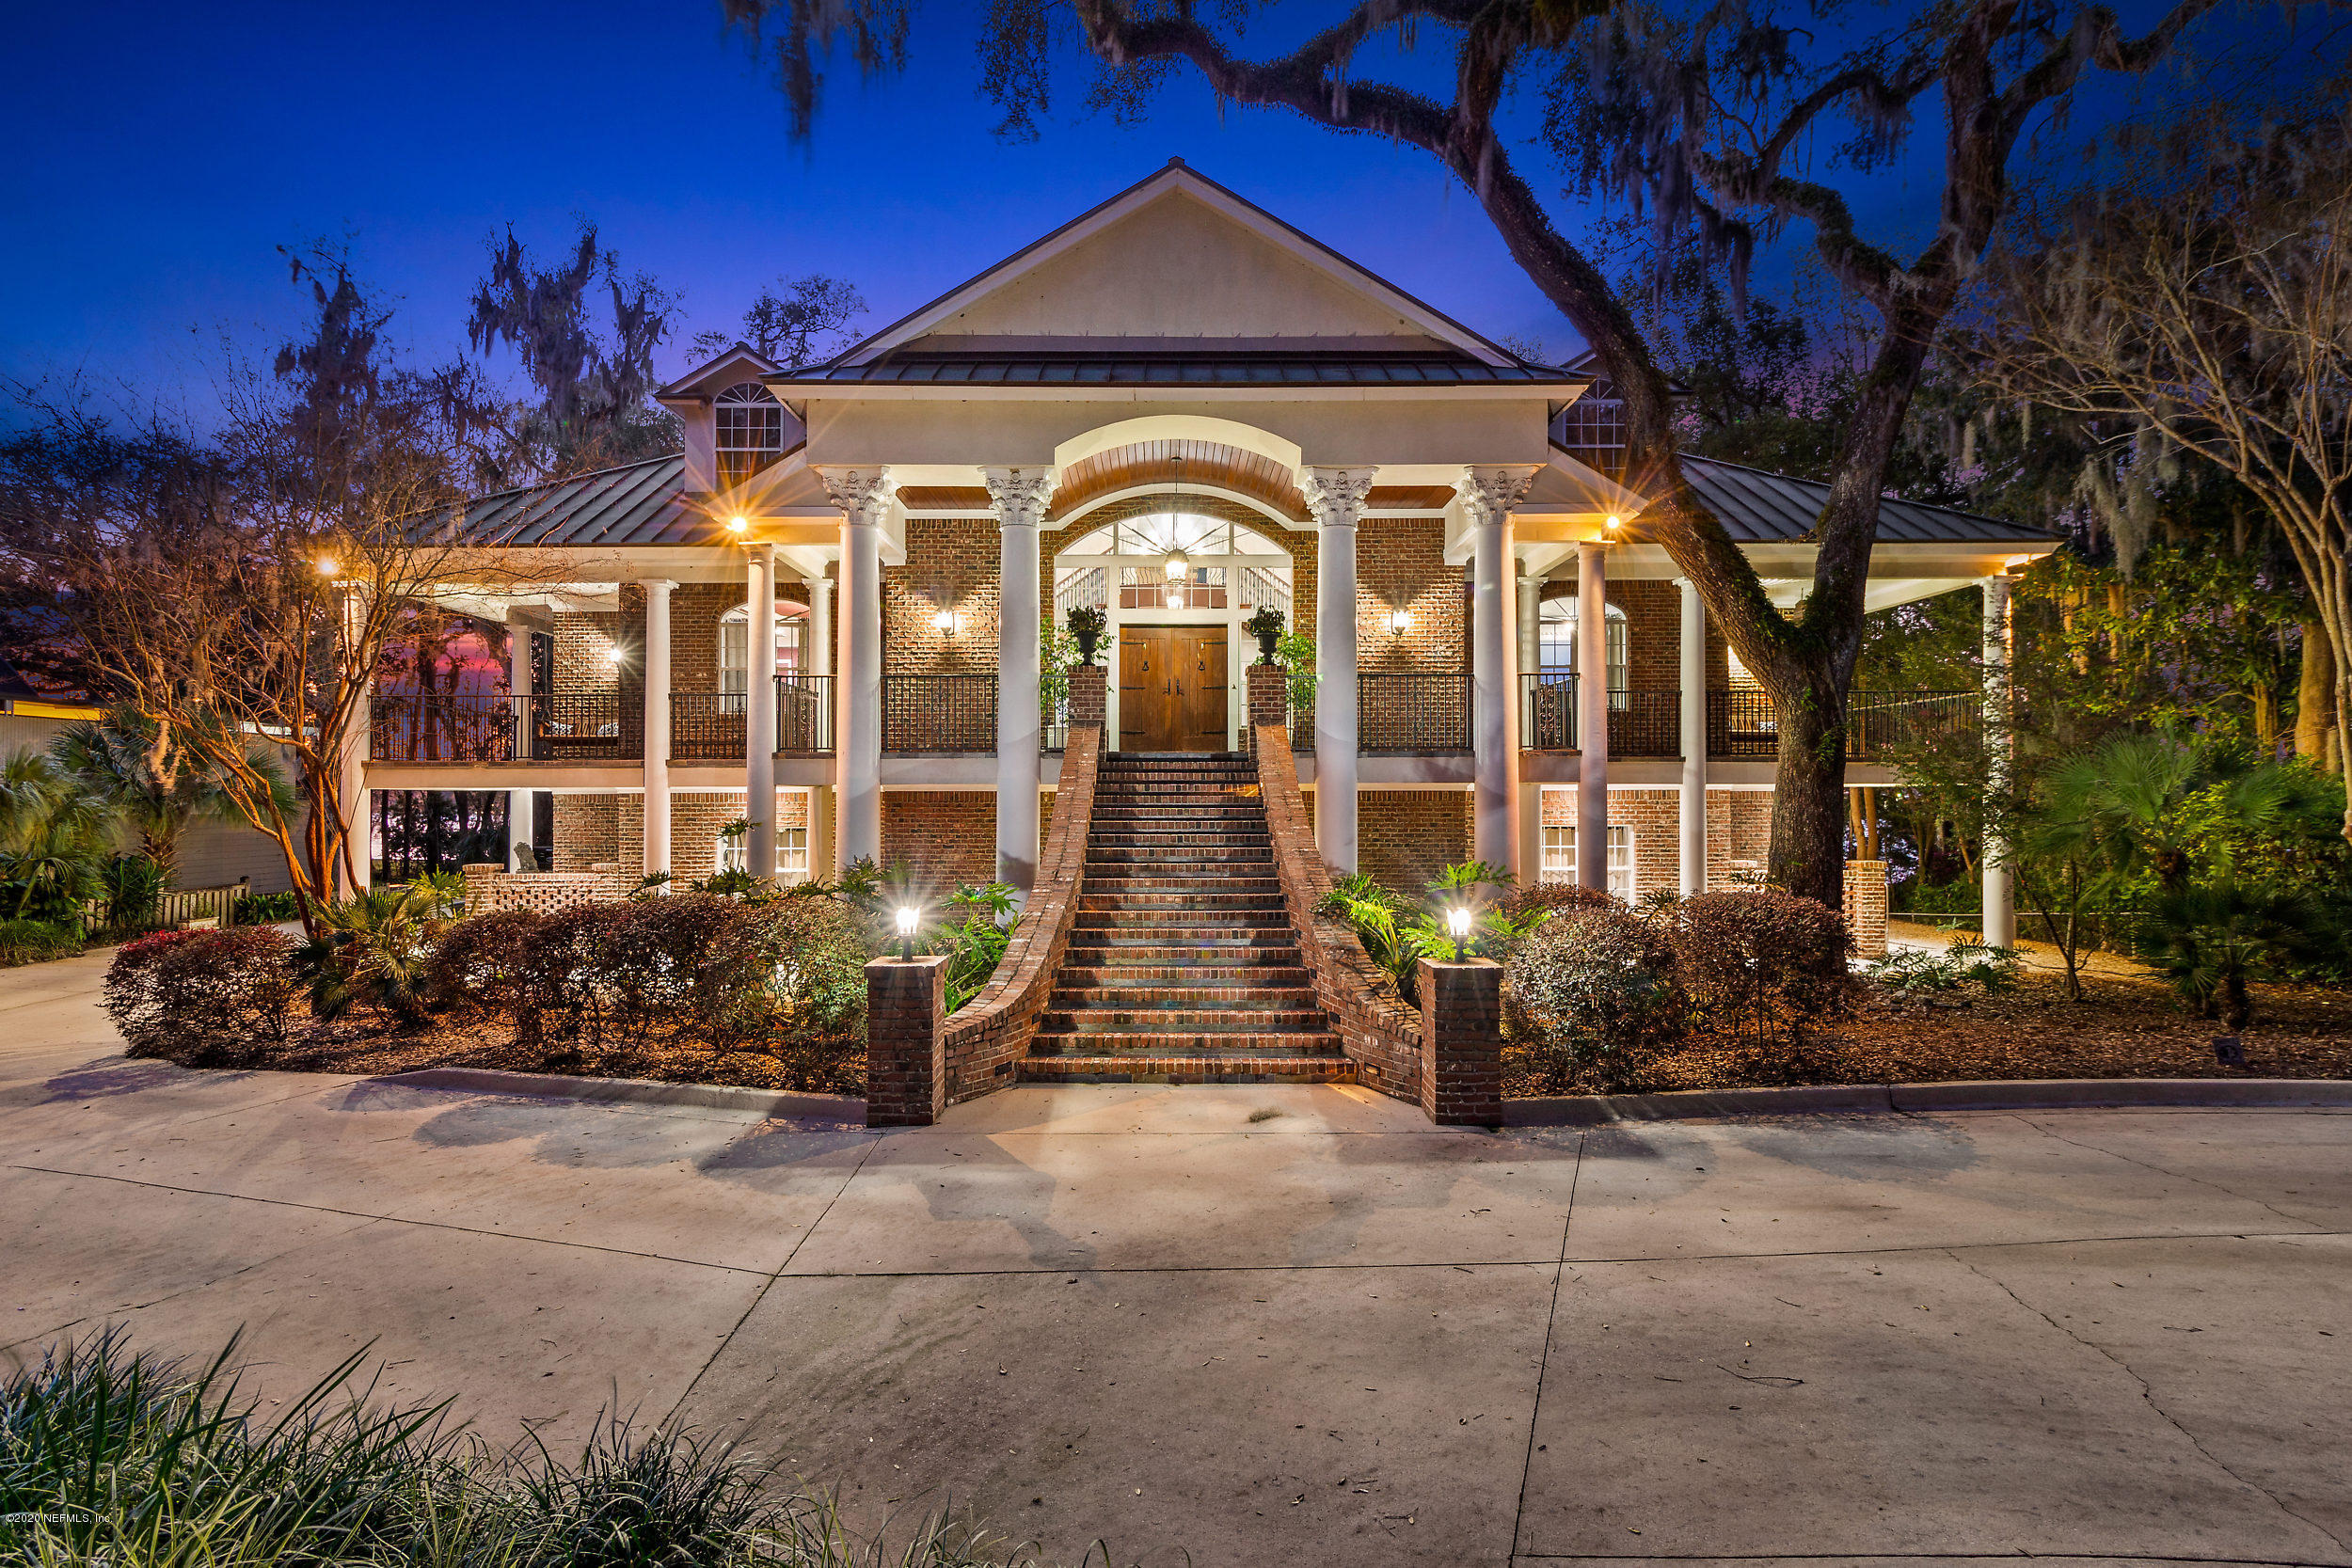 4200 ORTEGA FOREST, JACKSONVILLE, FLORIDA 32210, 5 Bedrooms Bedrooms, ,5 BathroomsBathrooms,Residential,For sale,ORTEGA FOREST,1037198